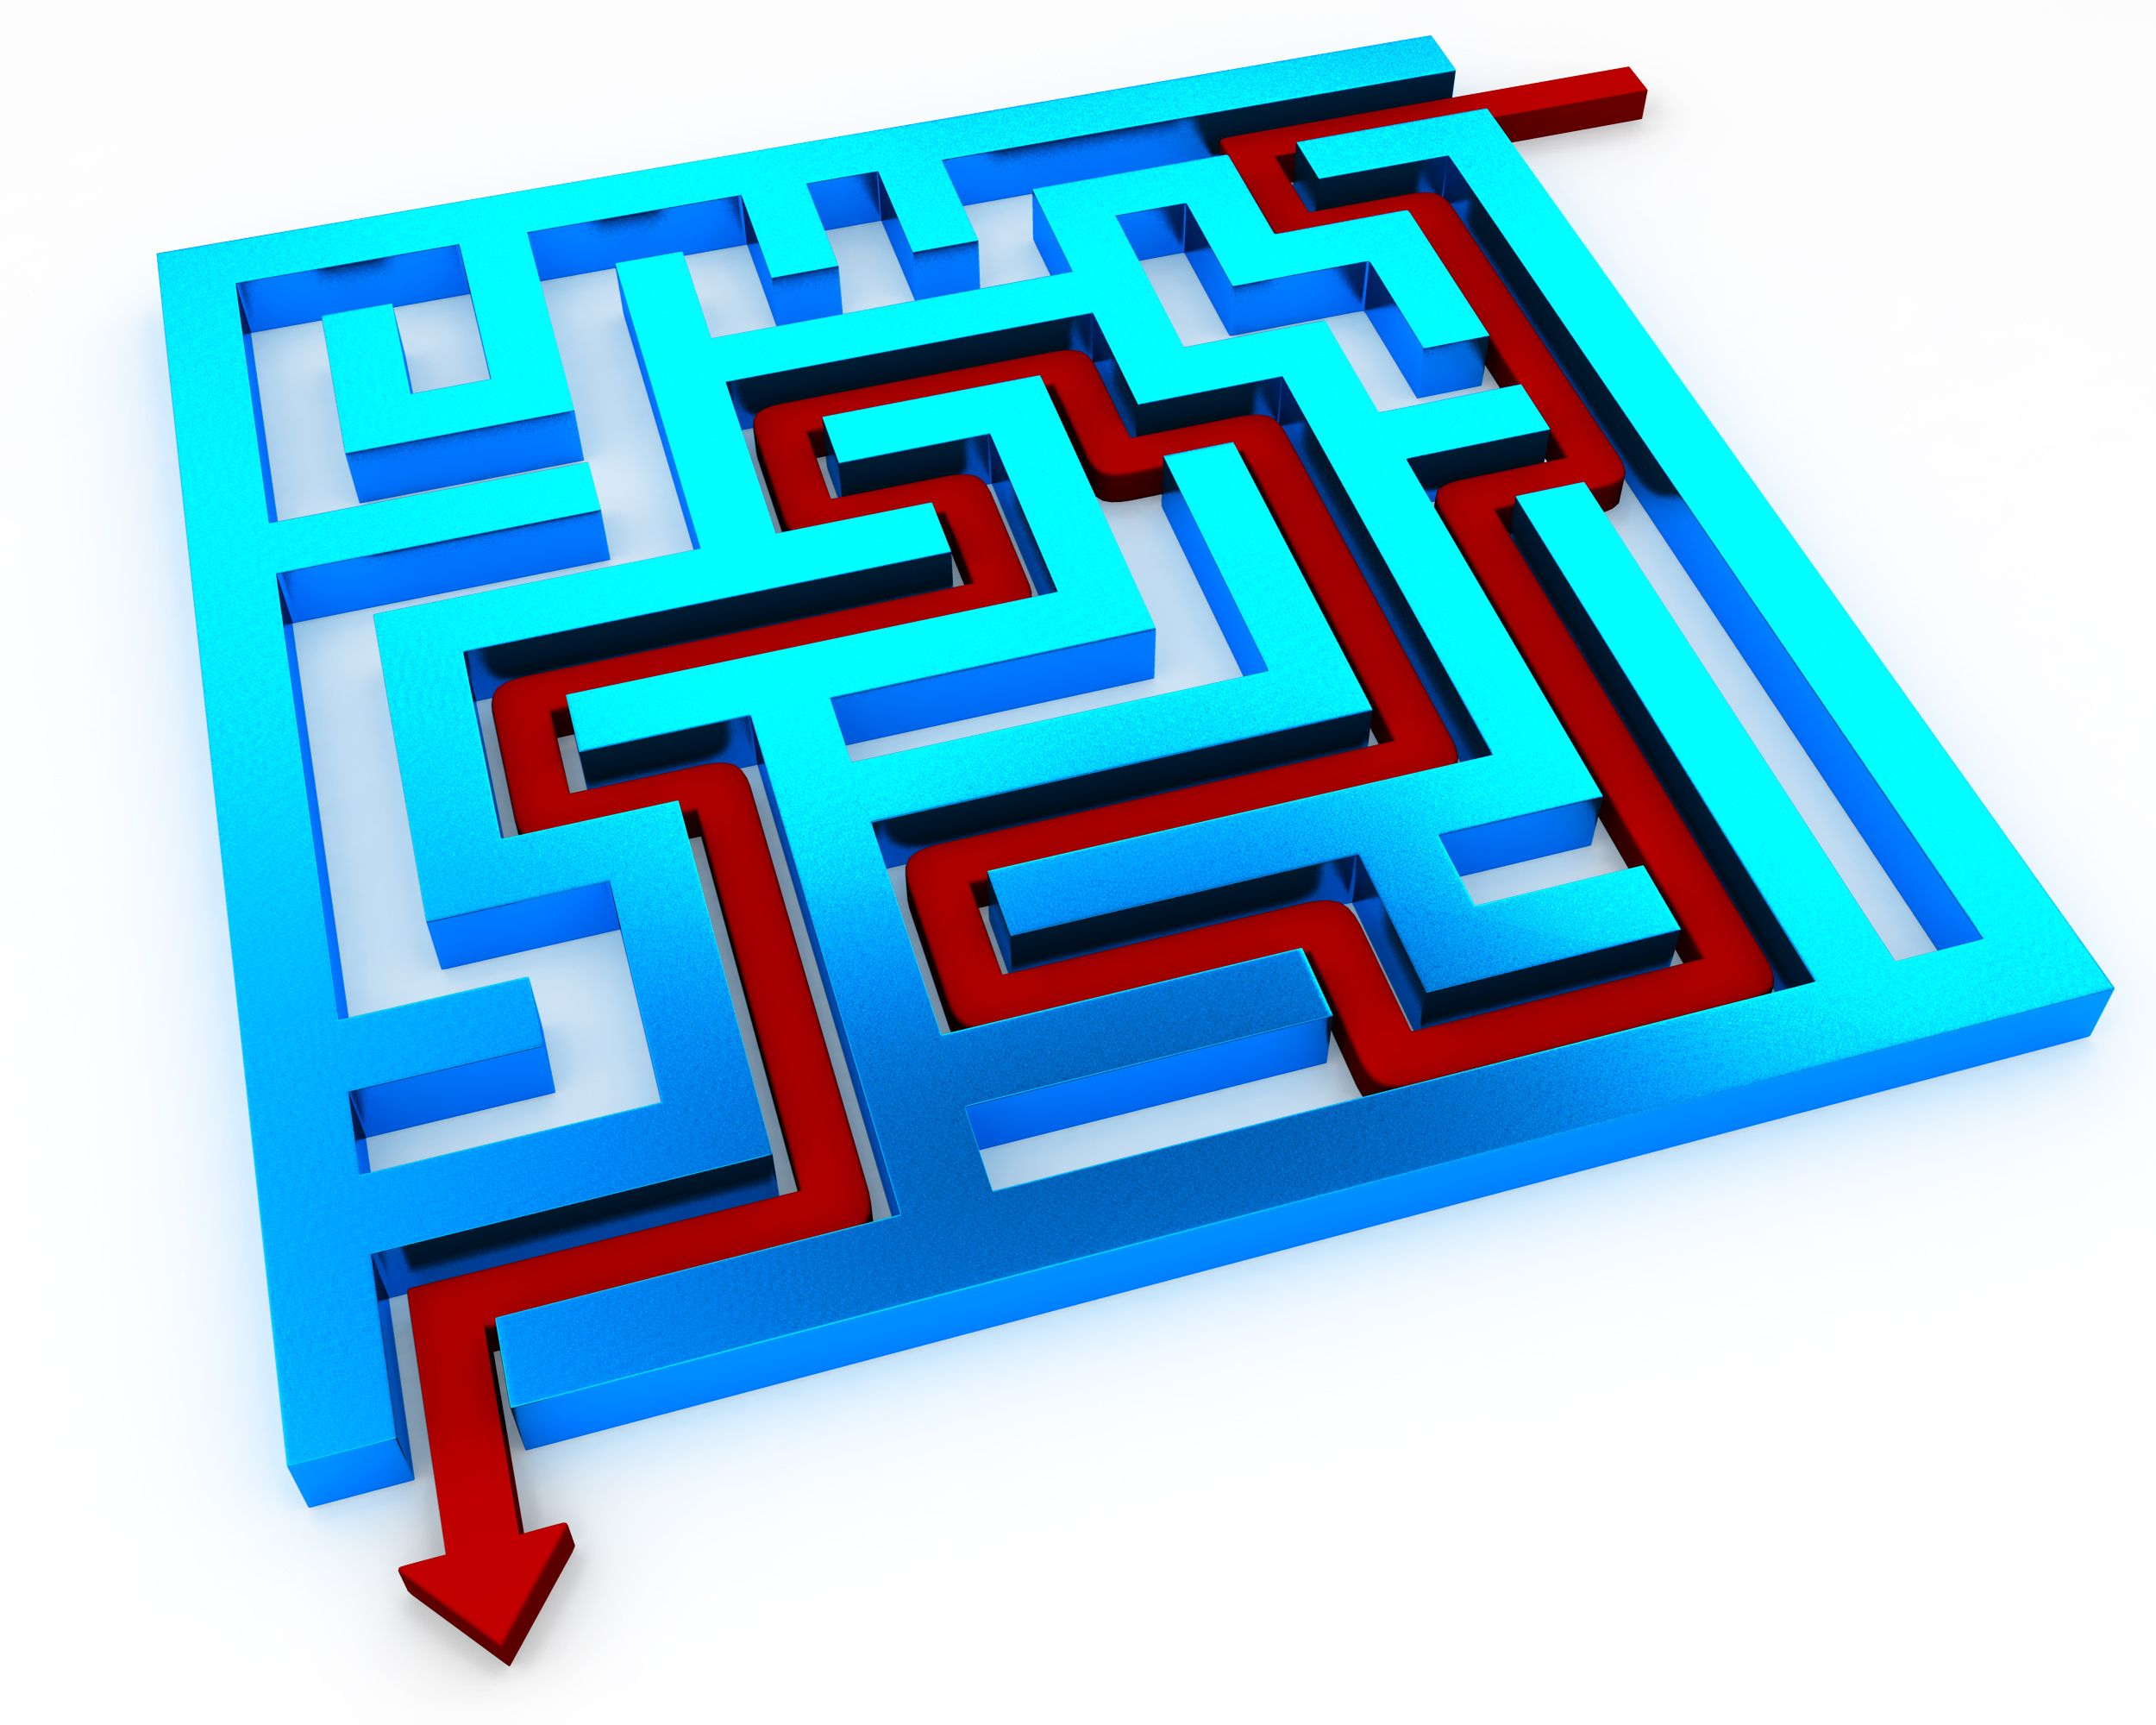 red_solution_path_with_square_maze_with_glossy_finish_for_problem_solving_stock_photo_Slide01